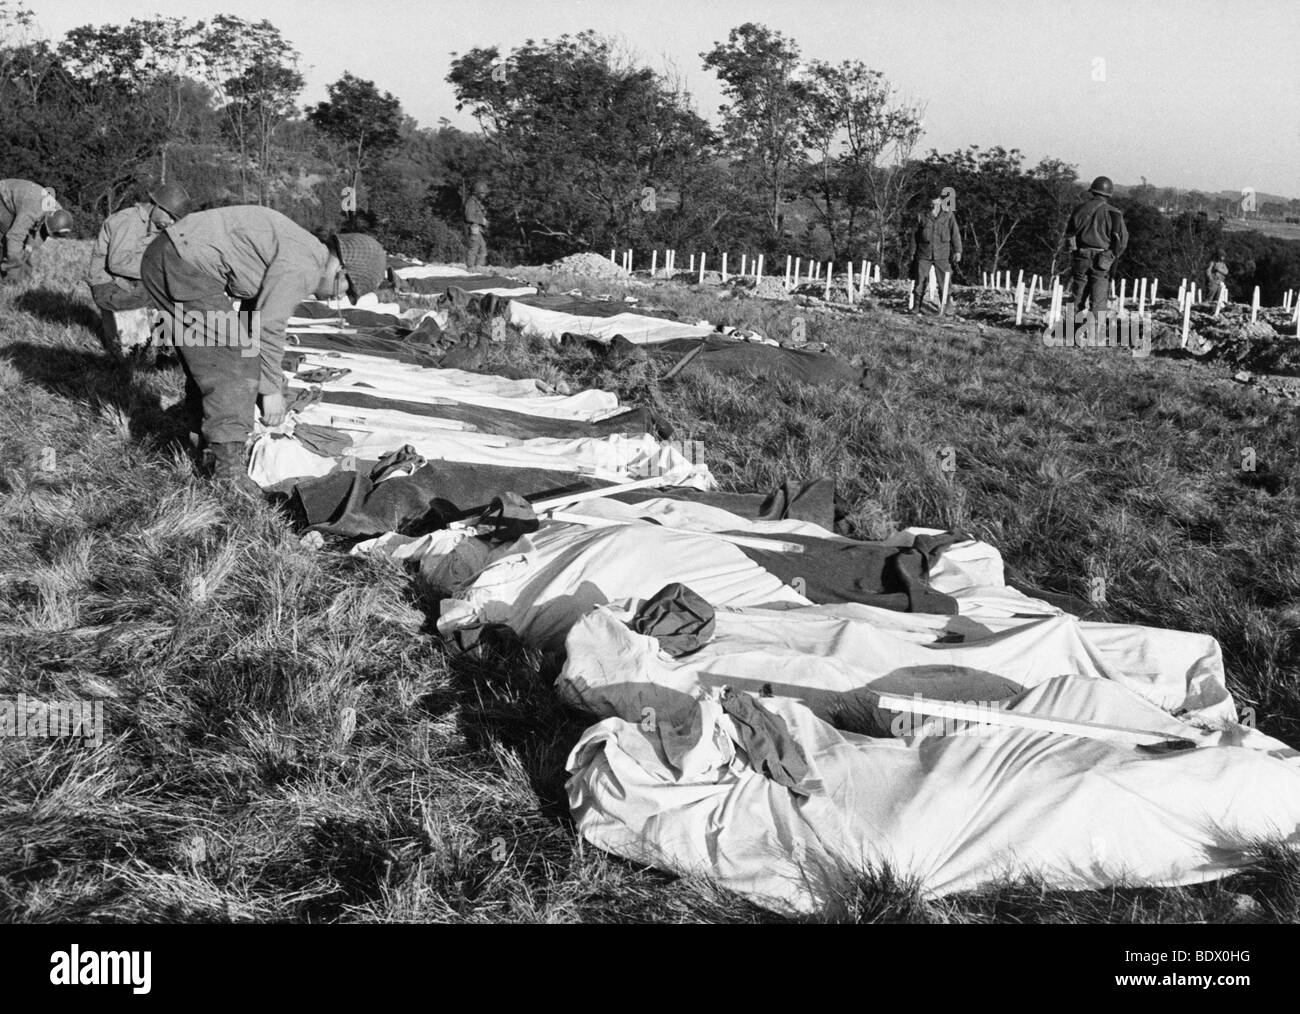 D-DAY CASUALTIES - American dead in body bags await temporary burial on 8 June 1944, a white stake carries their - Stock Image